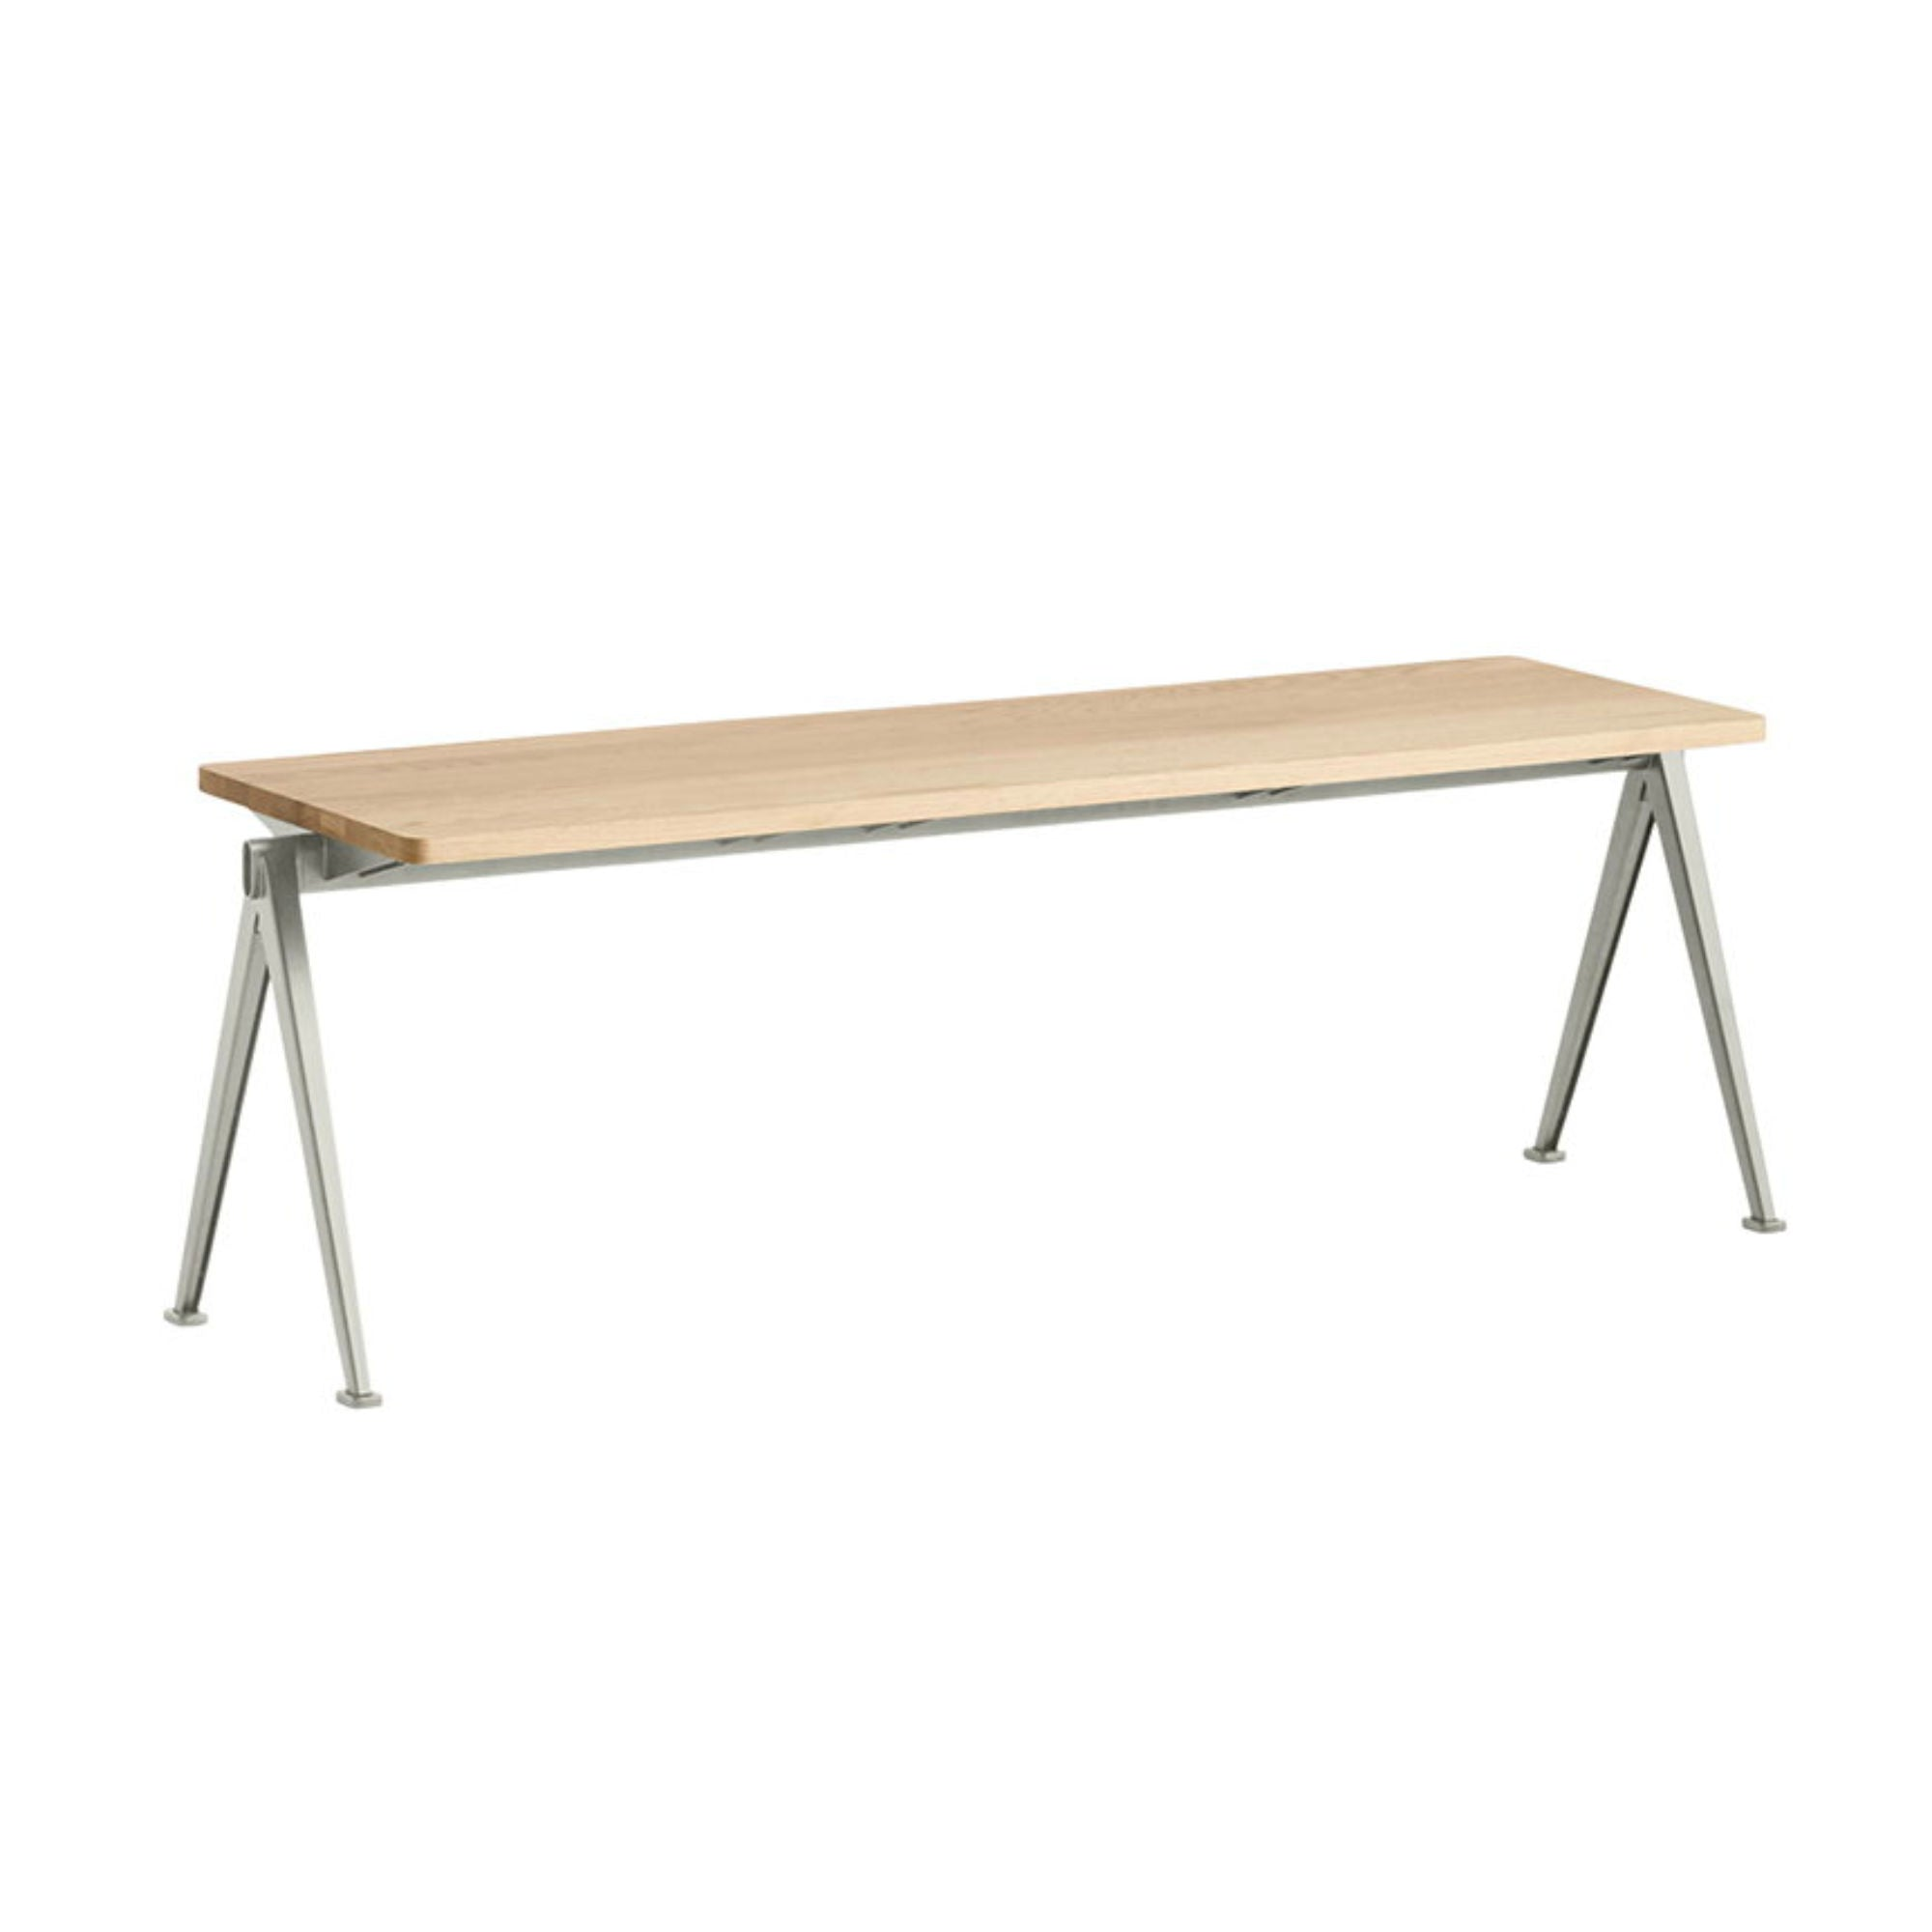 Hay Pyramid Bench 11 L140 , Matt Lacquered Solid Oak - Beige Frame